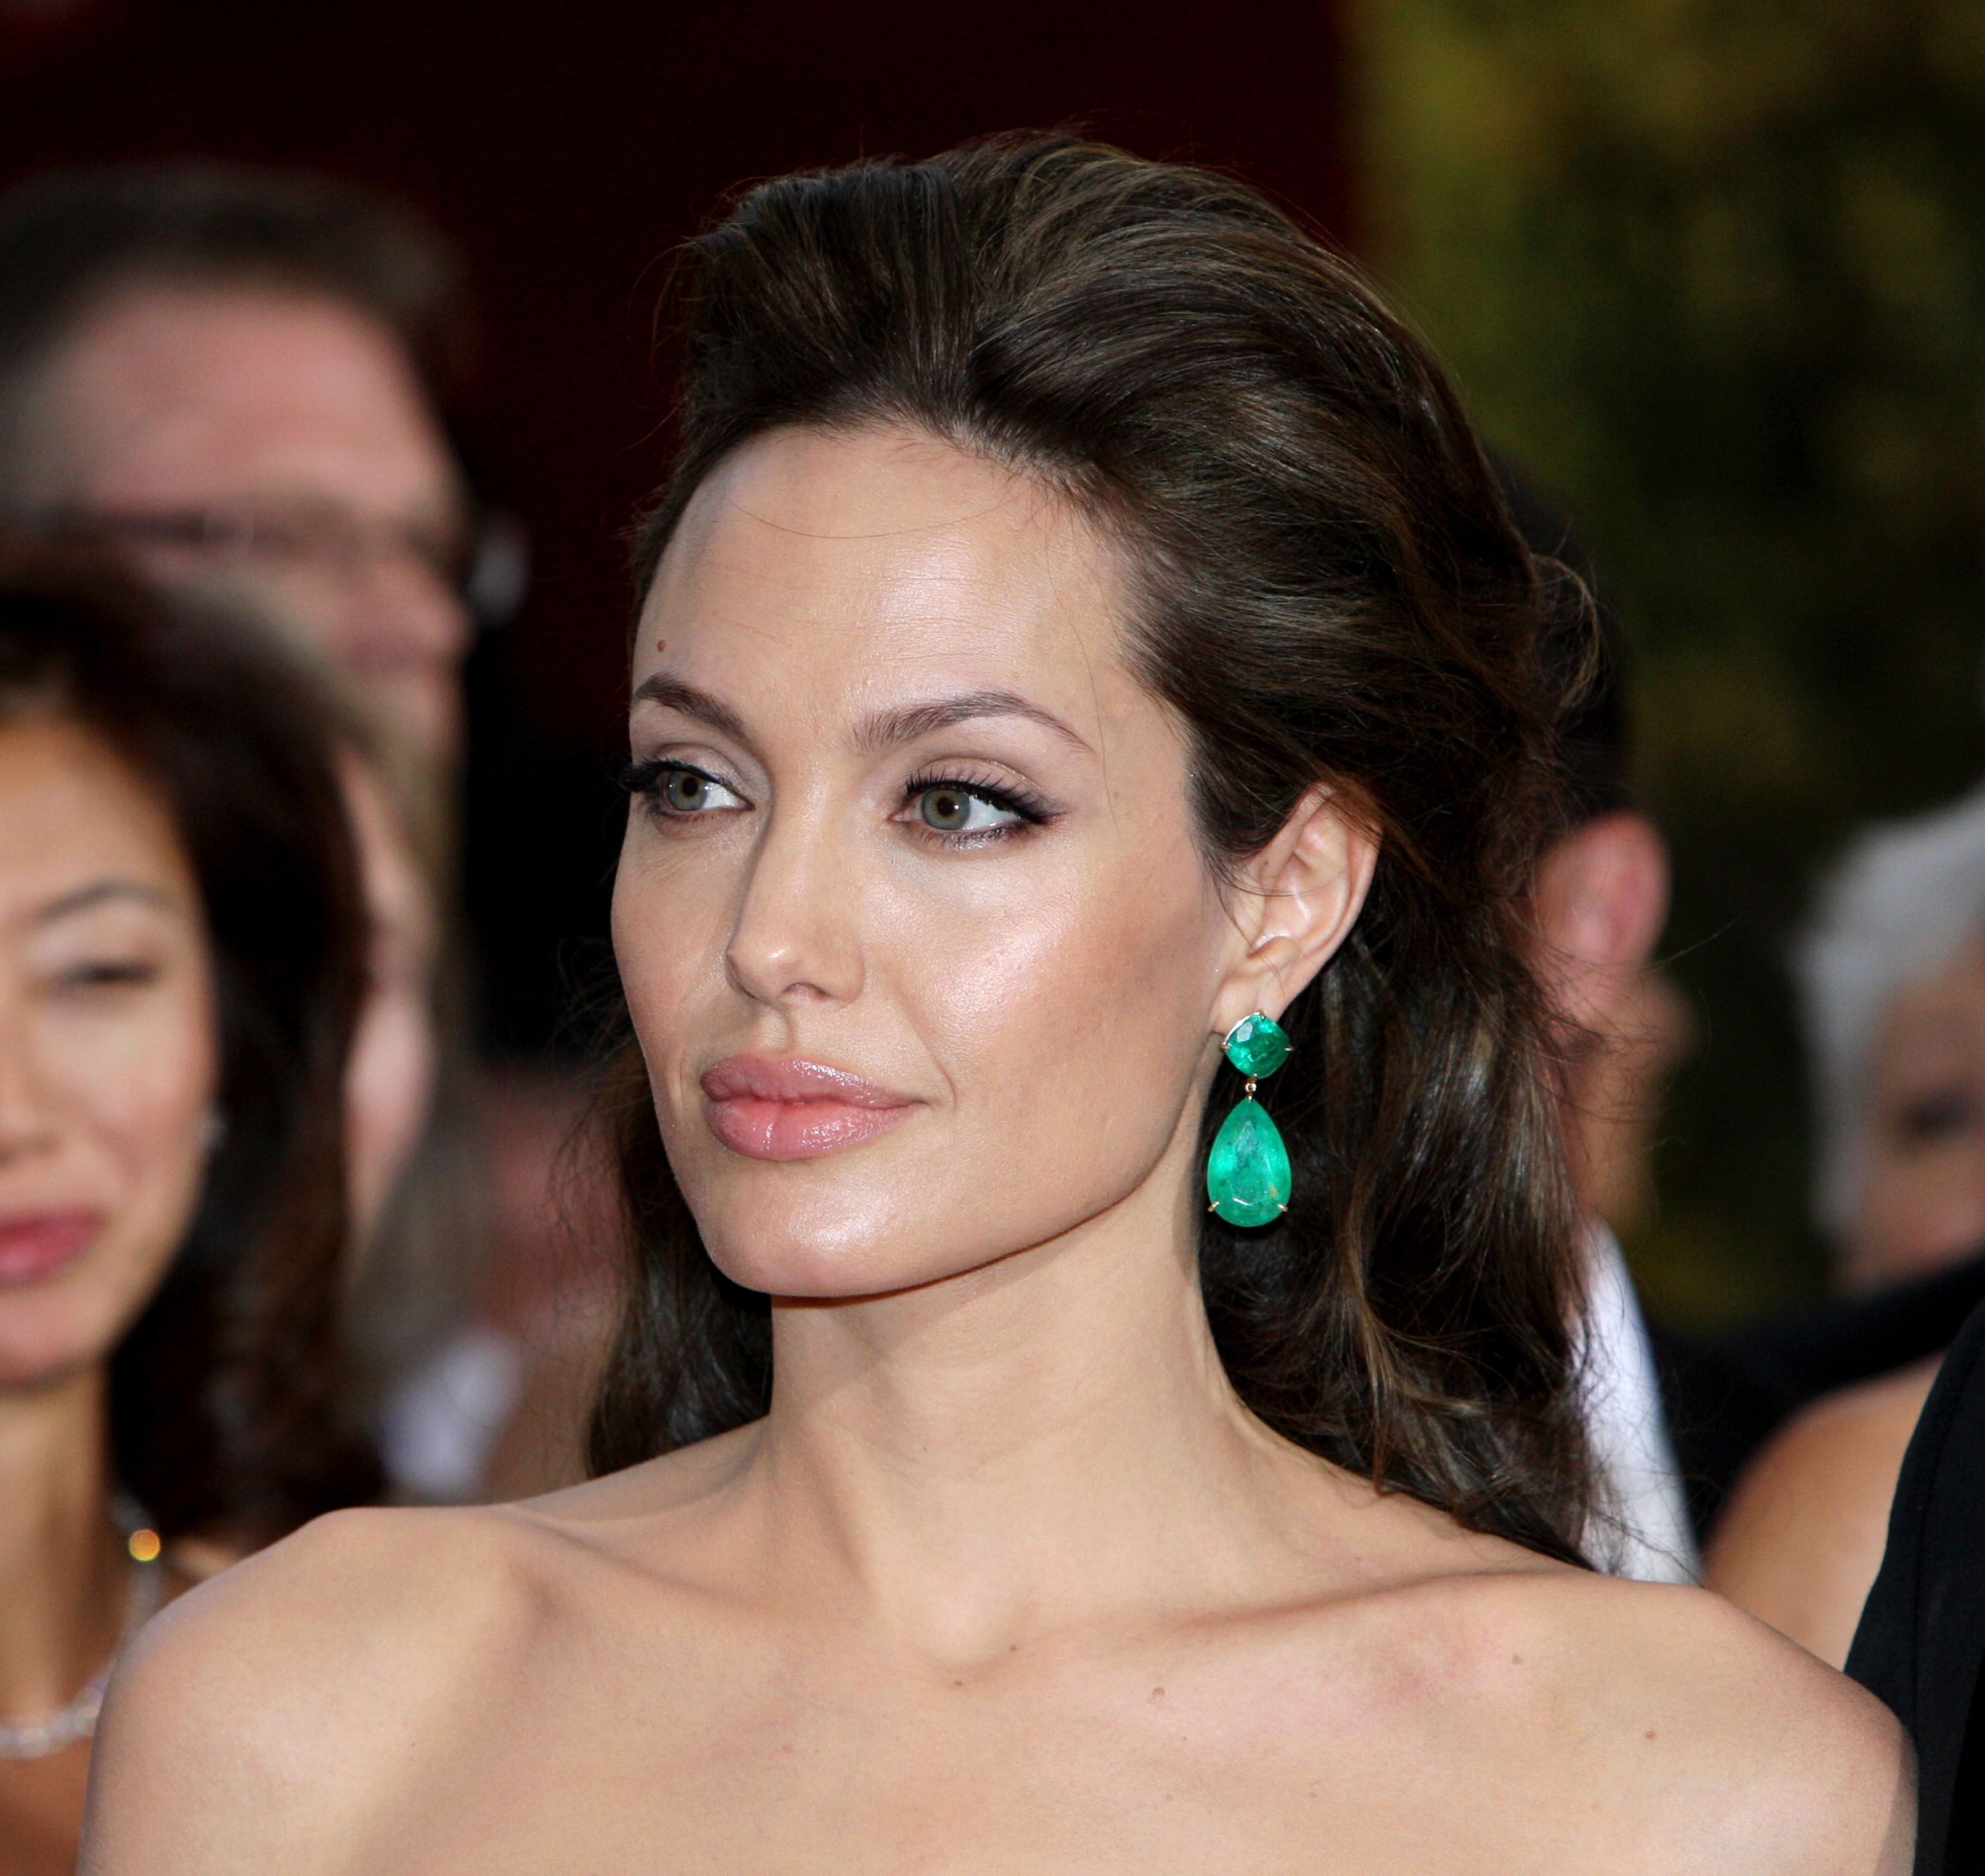 Angelina Jolie Nue Sex wcw: angelina jolie | greek hair, oscar hairstyles, hair